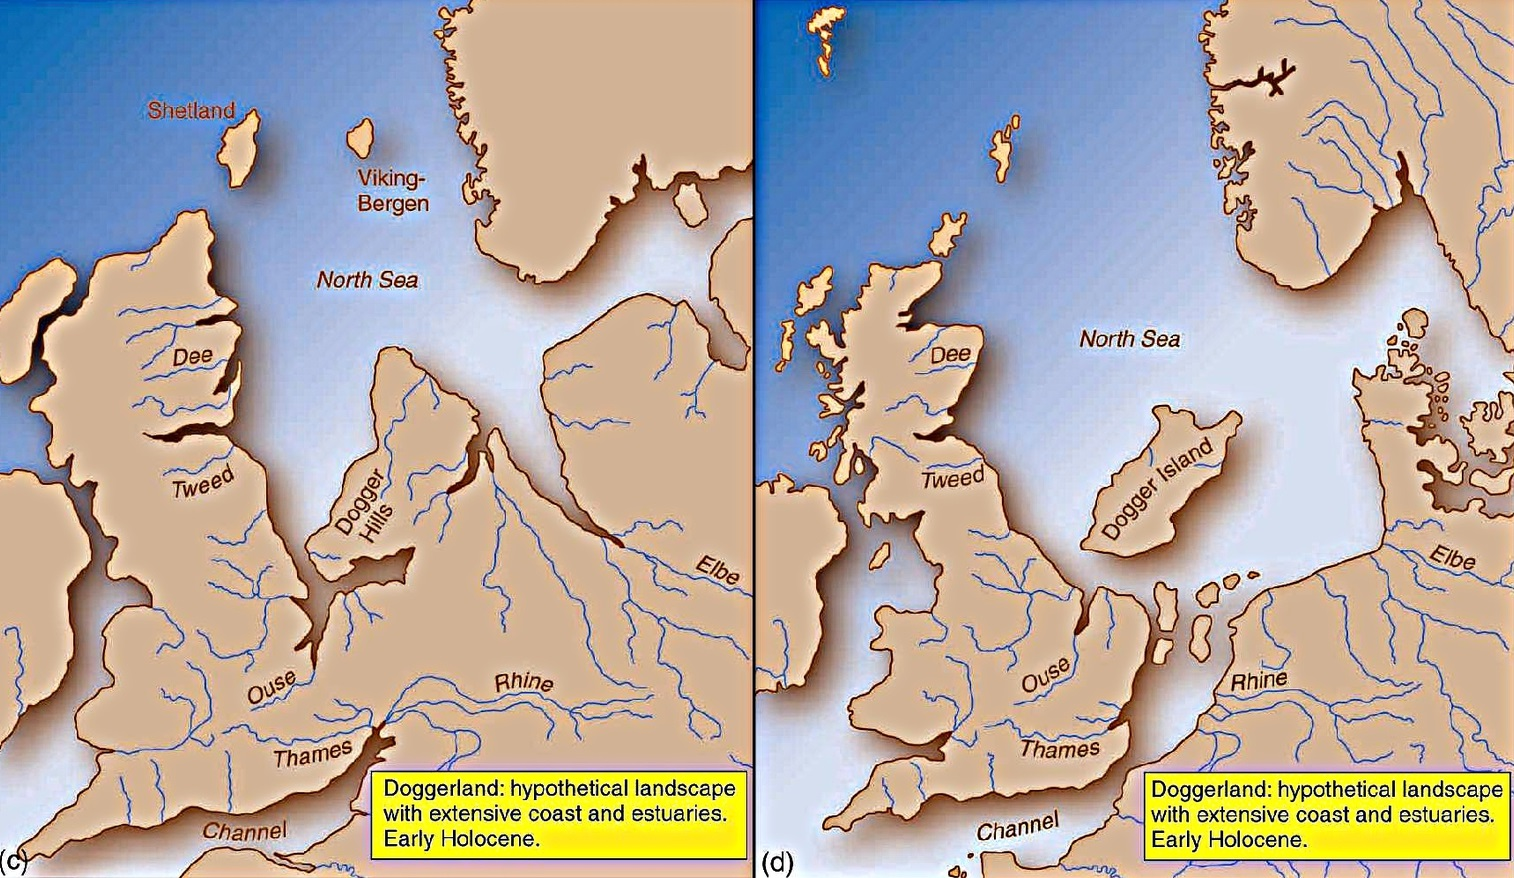 The North Sea appears at start of the modern period (C), leaving only 'Dogger Island' (Dogger Bank) as recognisable coastlines appear (D). Vincent Gaffney